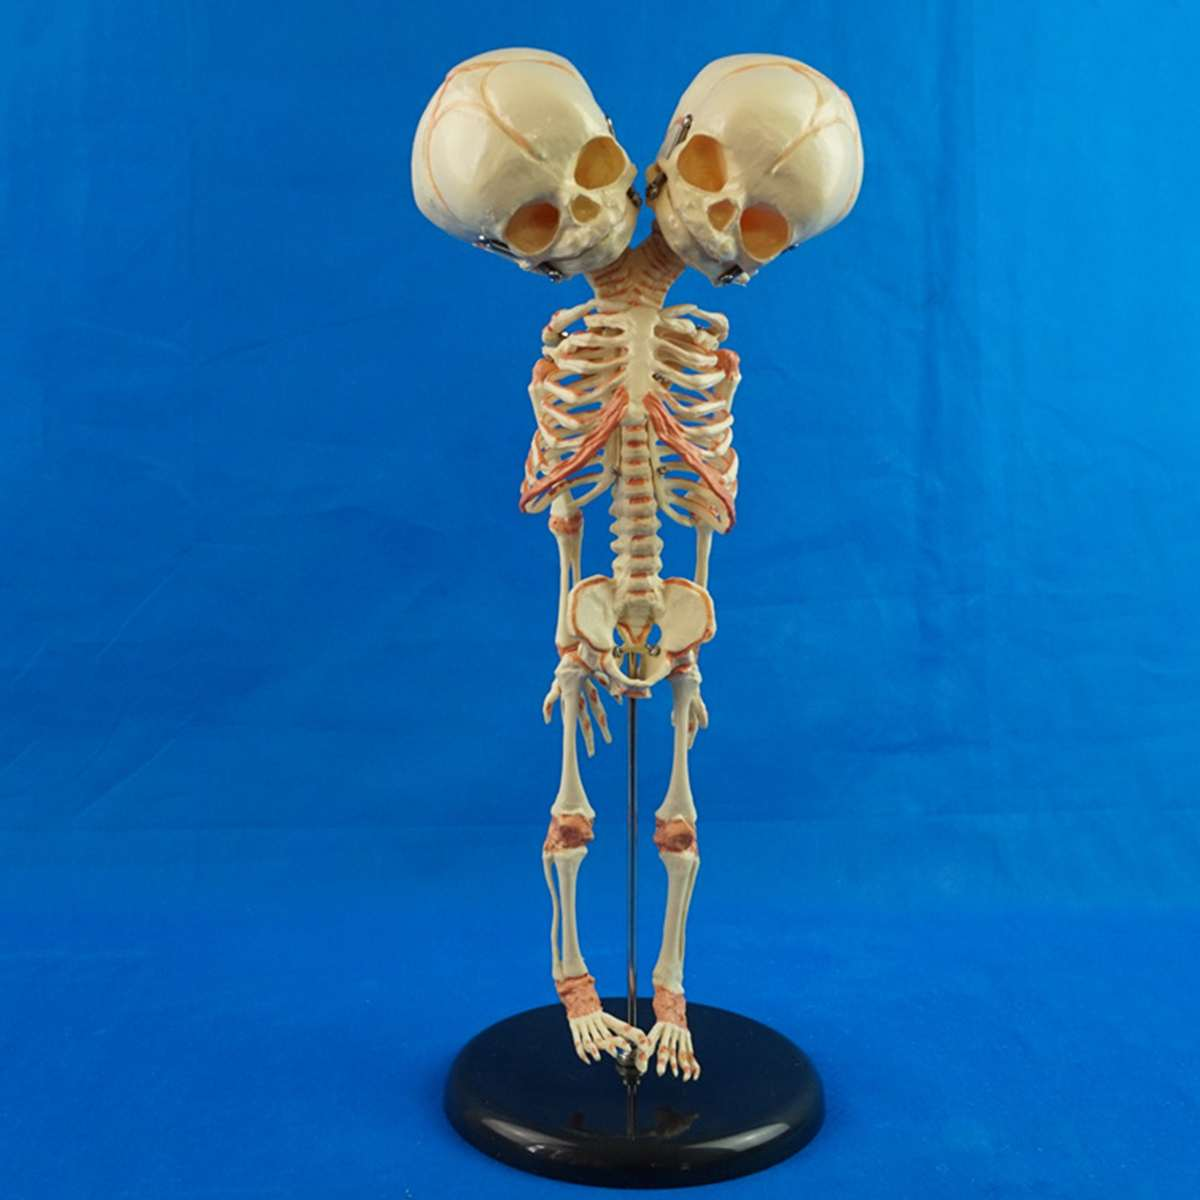 37cm Human New Double Head Baby Anatomy Skull Skeleton Anatomical Brain Anatomy Education Model Anatomical Study Display